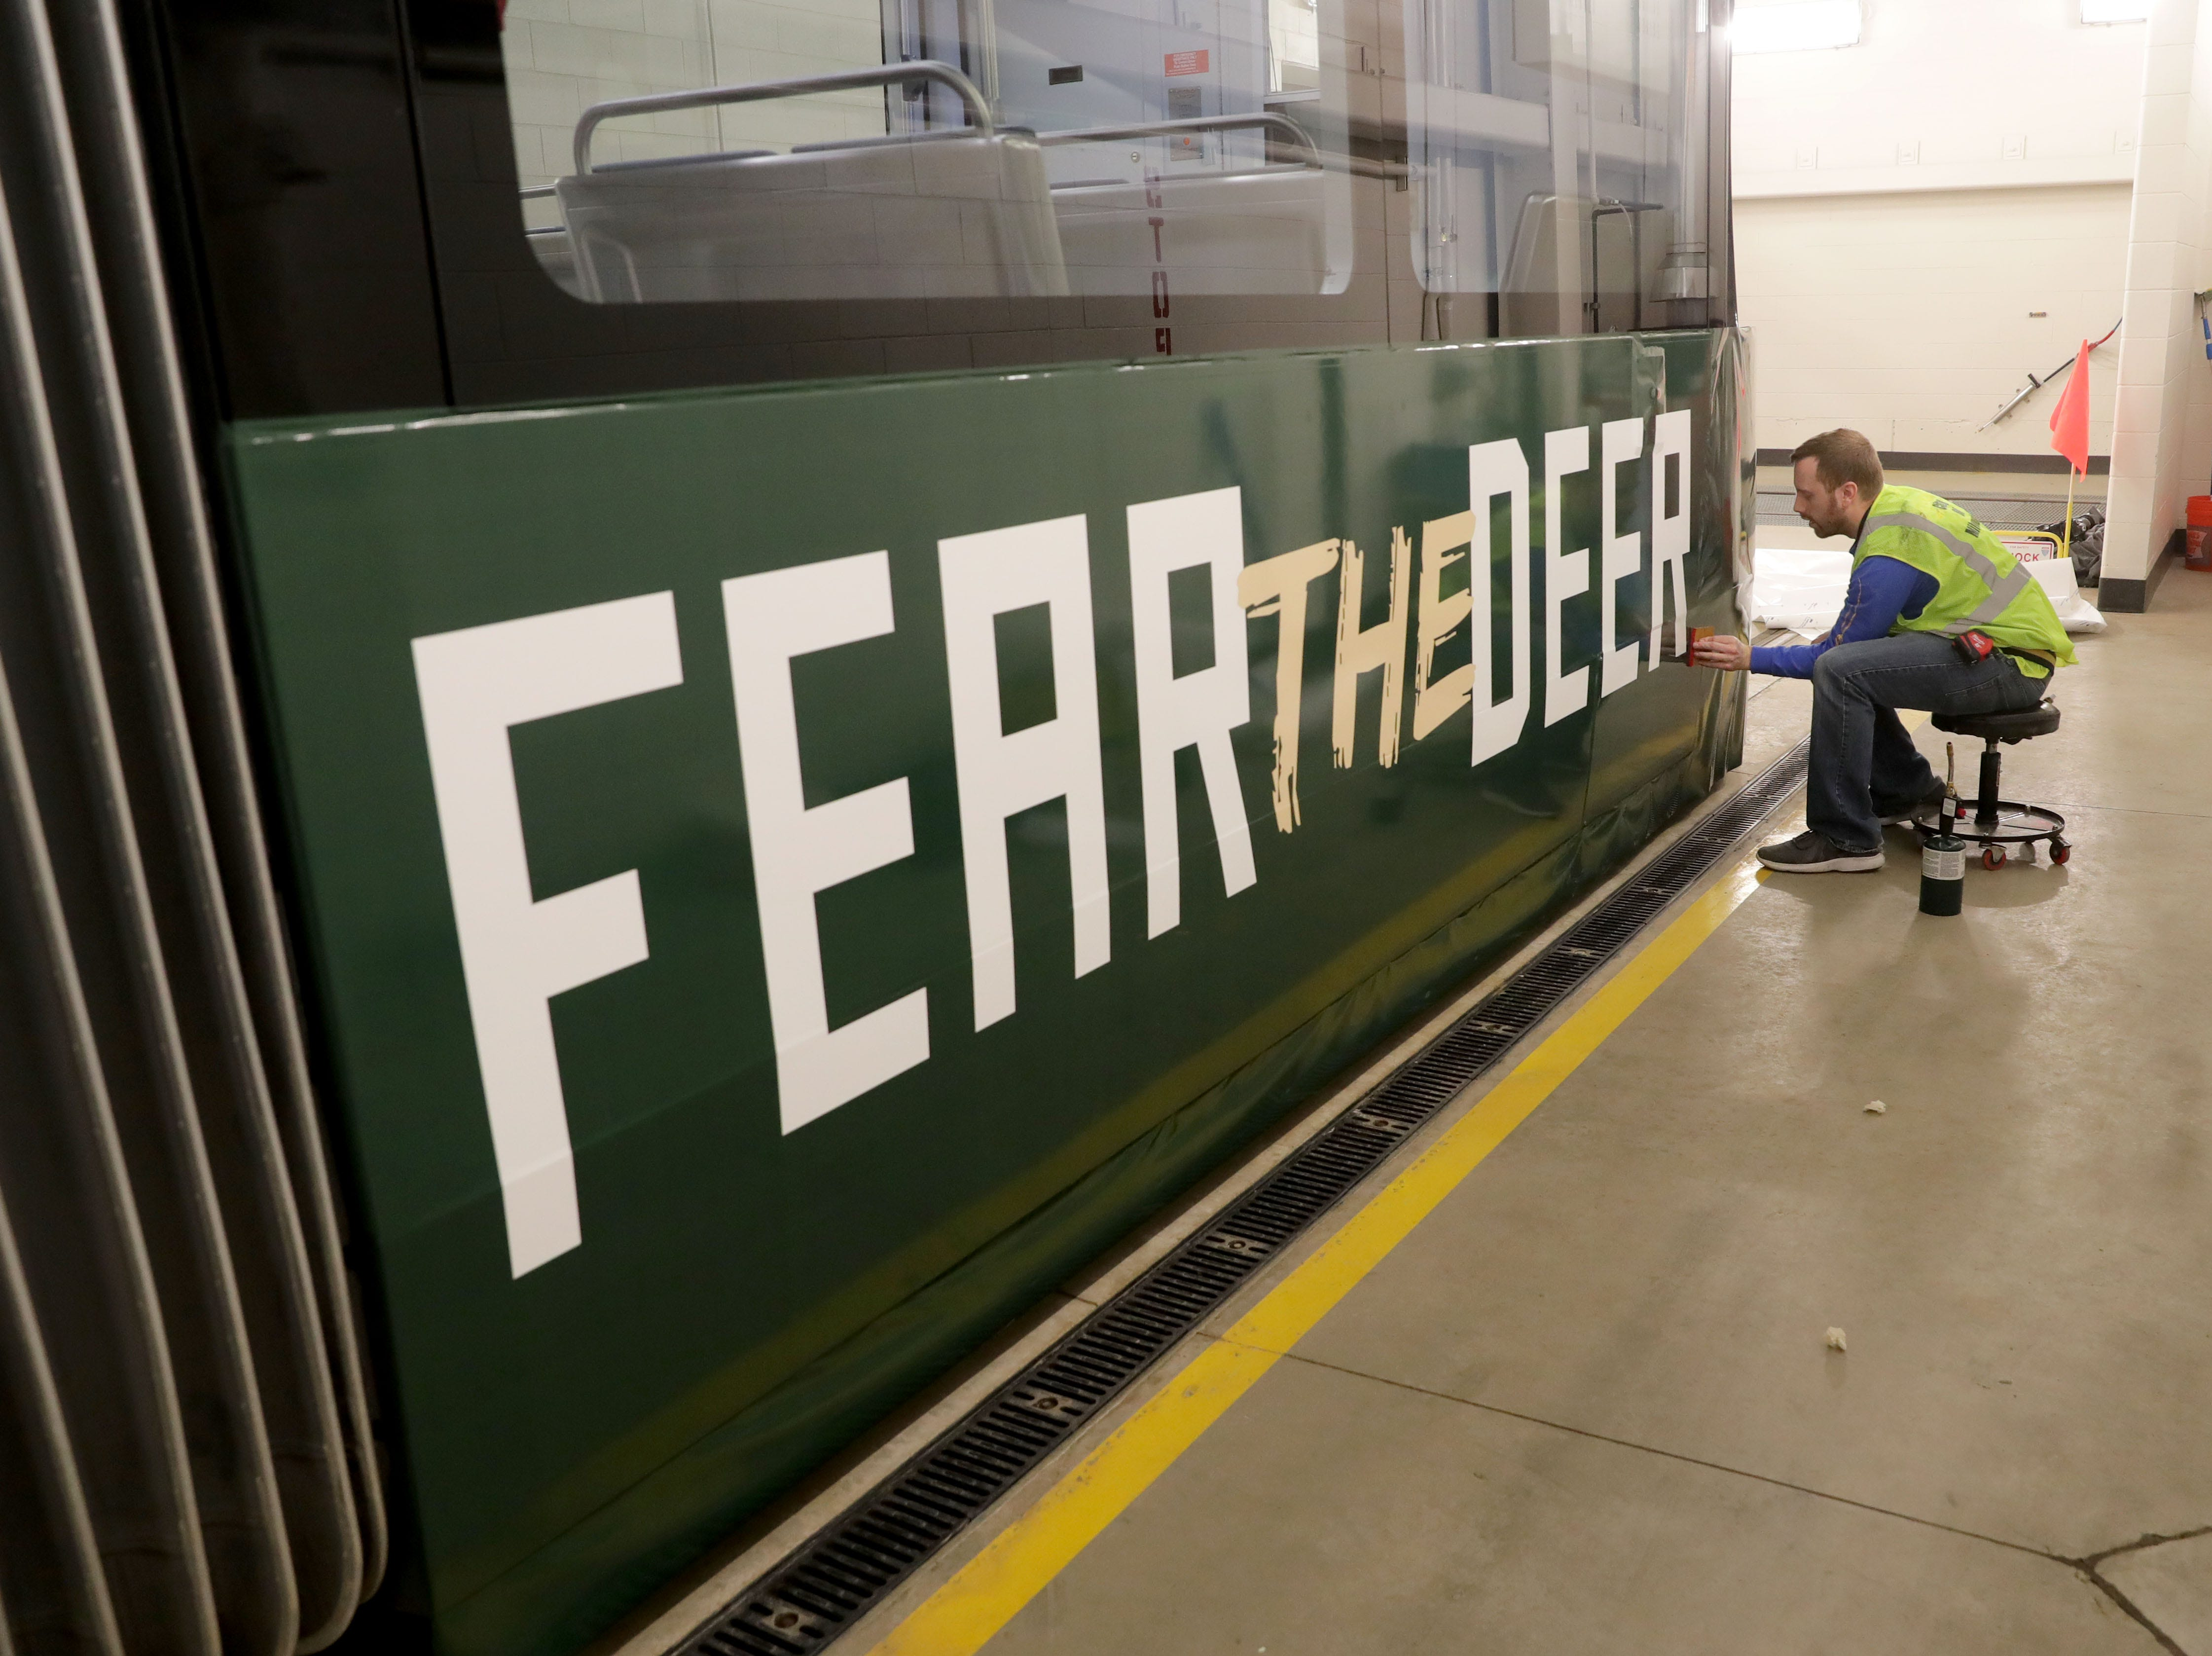 (OK FOR FRIDAY 4/12 PRINT - ONLINE EMBARGO UNTIL 10:45 FRIDAY 4/12) Troy Heinzel with Signs and Lines by Stretch work on attaching a logo to the outside of the streetcar.  One of Milwaukee's streetcars, known as The Hop is wrapped in Milwaukee Bucks colors in support of the Bucks playoff run in Milwaukee on Thursday, April 11, 2019. In addition to the exterior flair, the interior has been fitted with a replica Bucks court on the floor complete with life-size player footprints.   Photo by Mike De Sisti/Milwaukee Journal Sentinel